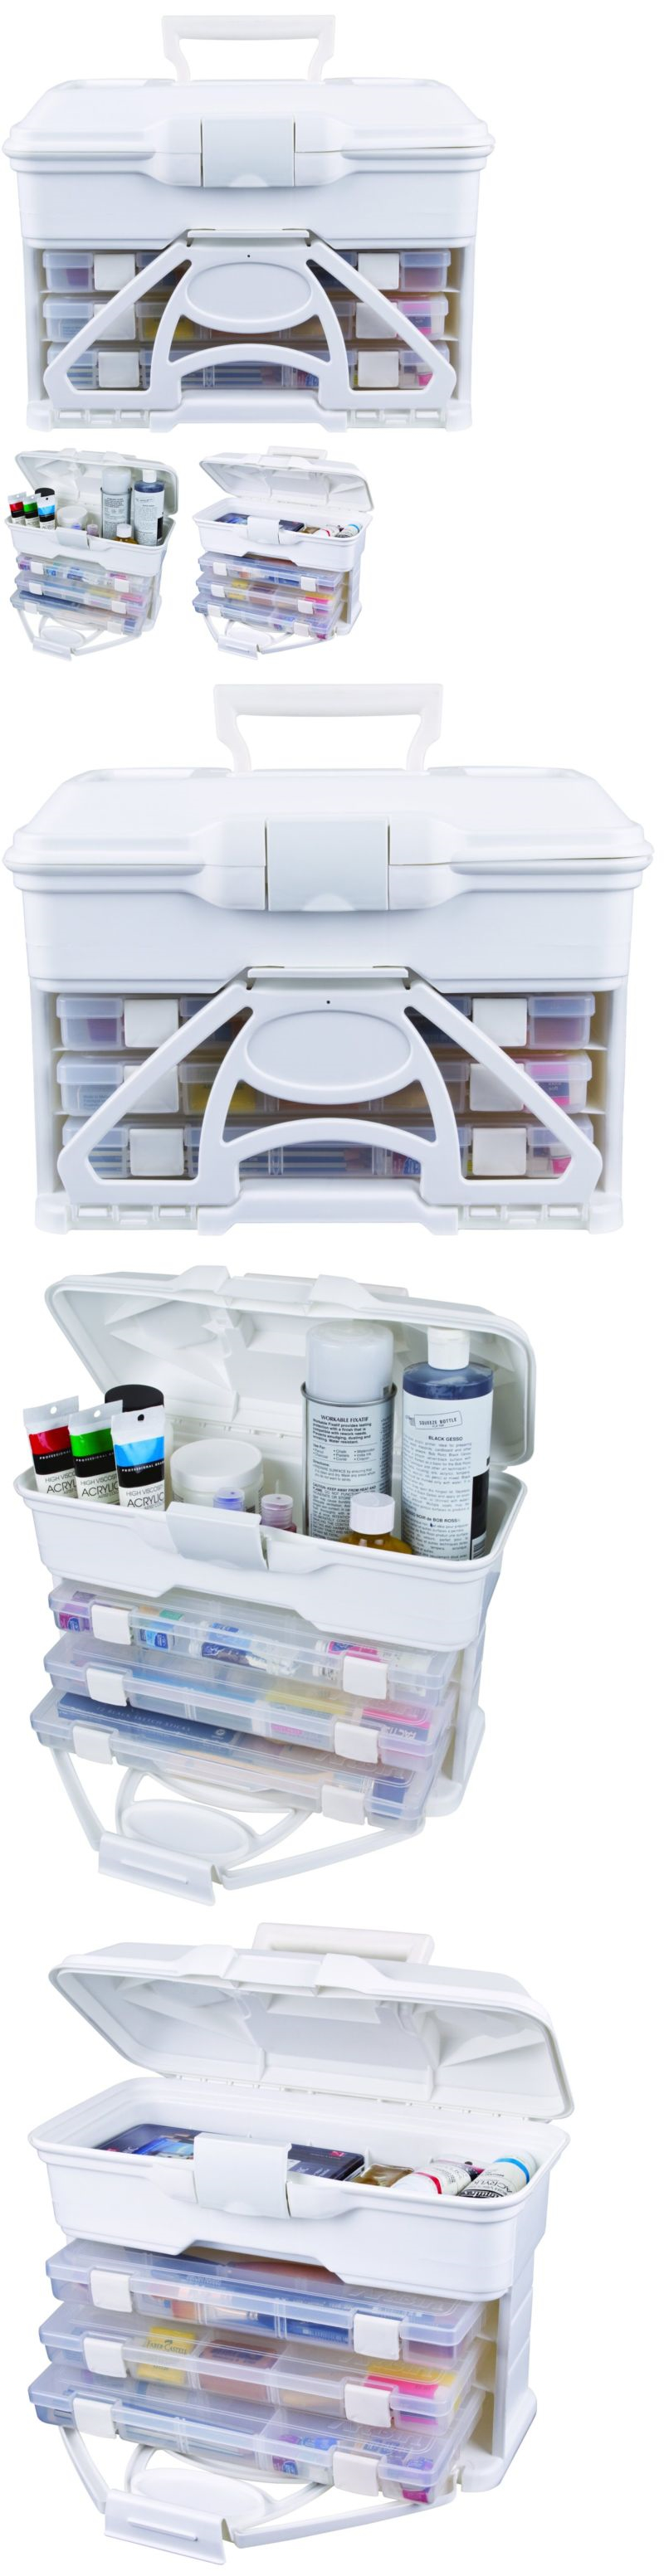 Sewing Boxes and Storage 83965: Cabinet Storage Organizer Box ...